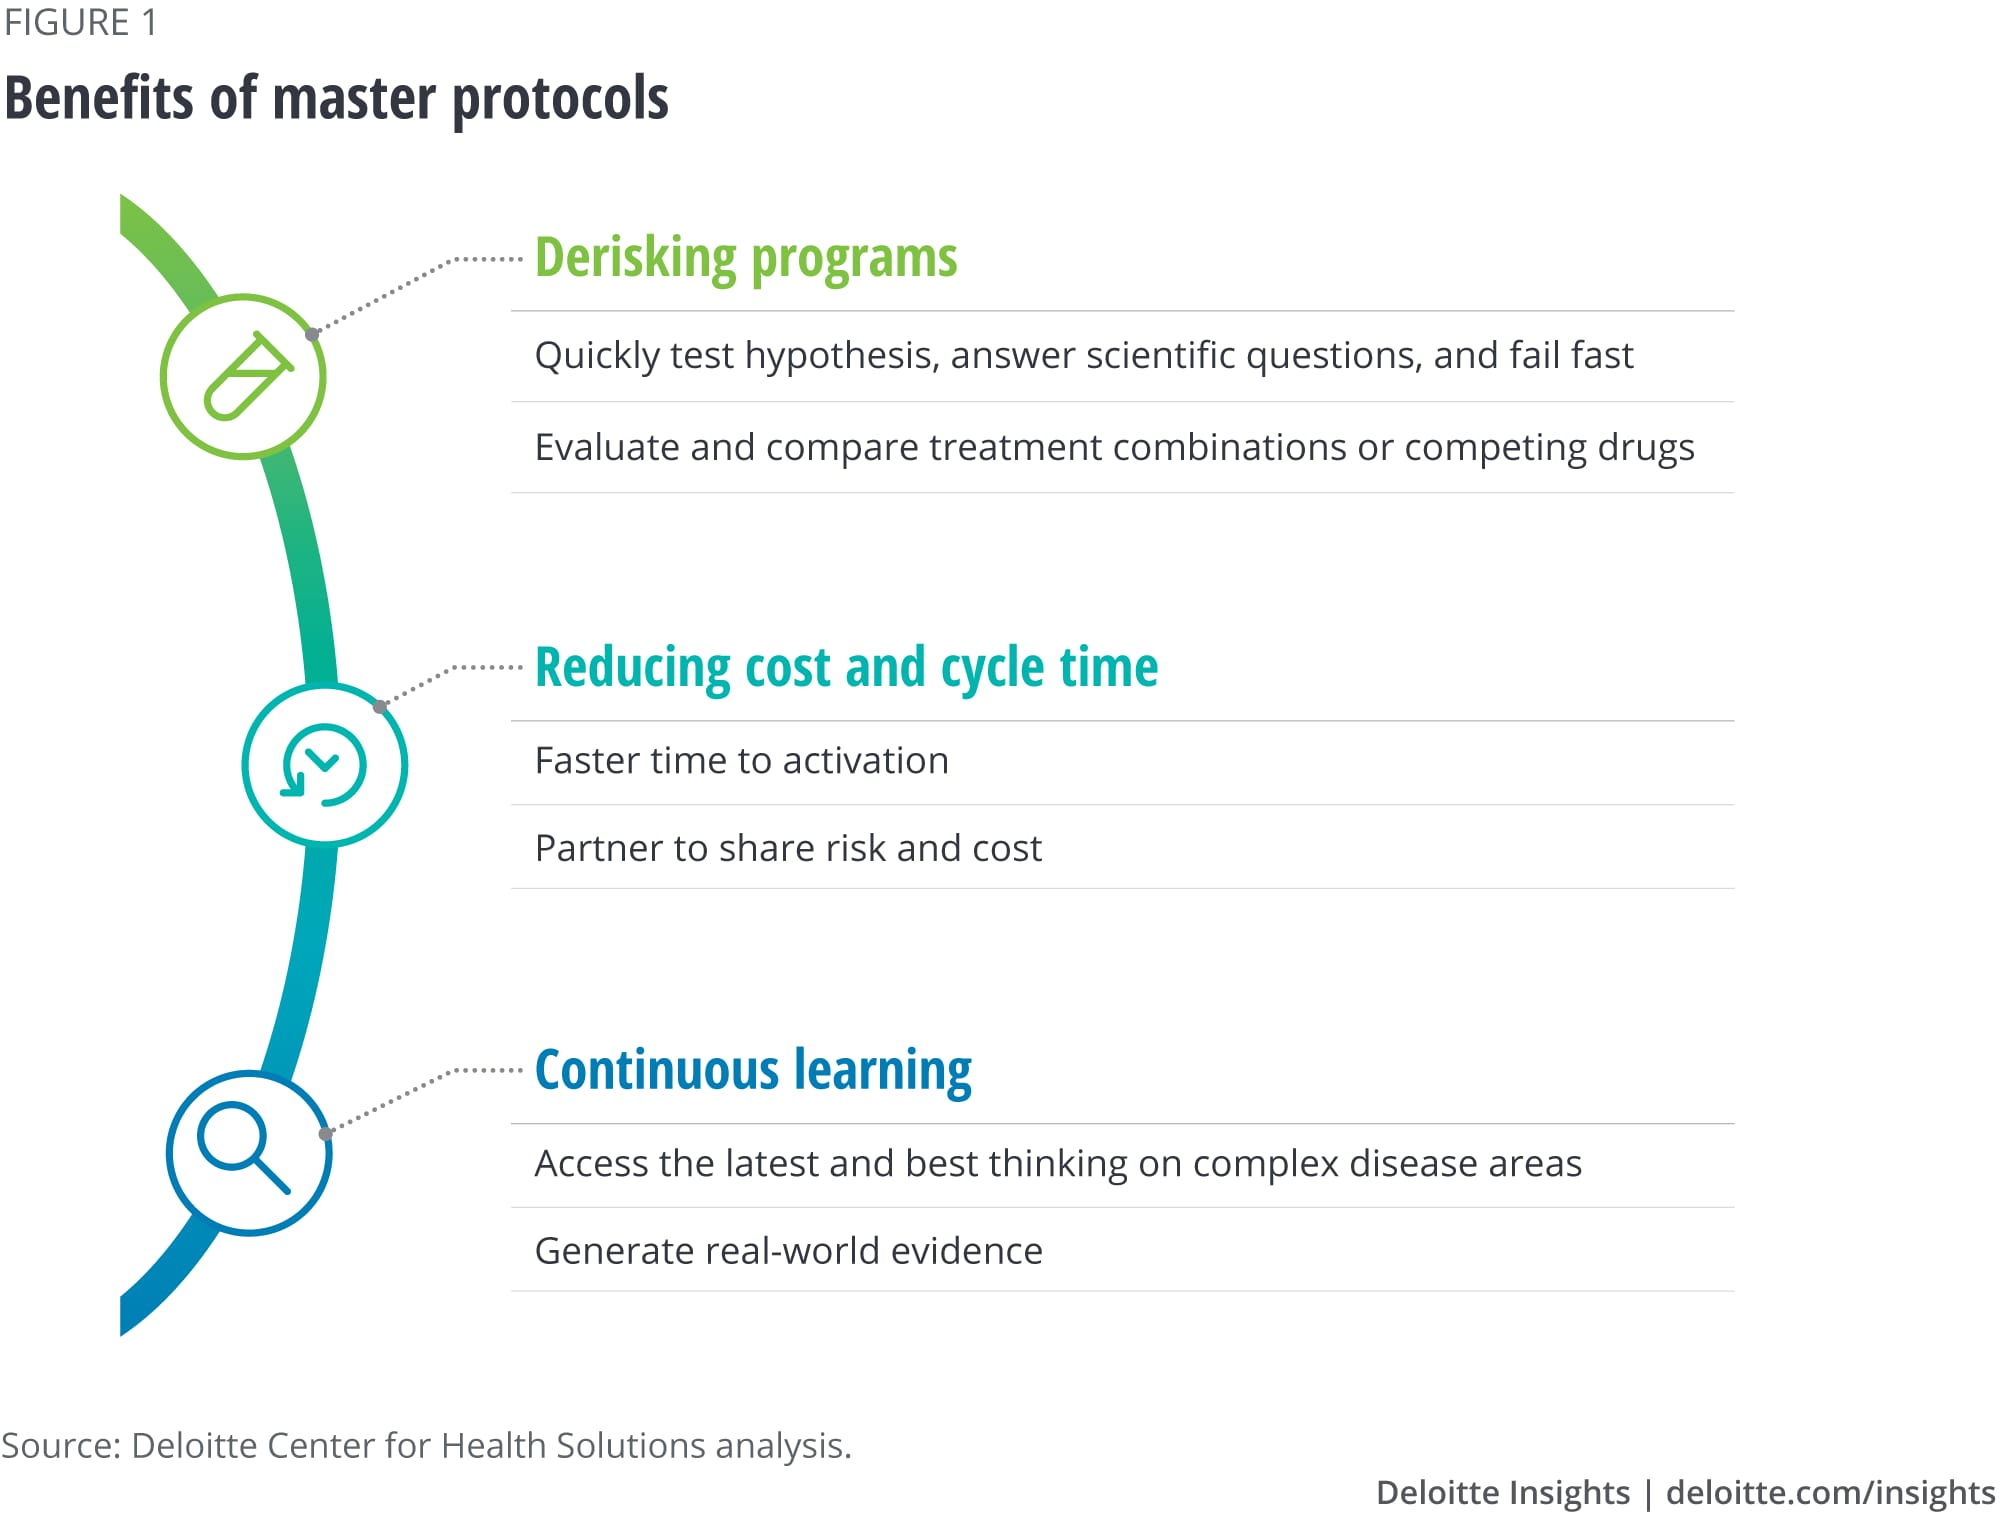 Benefits of master protocols